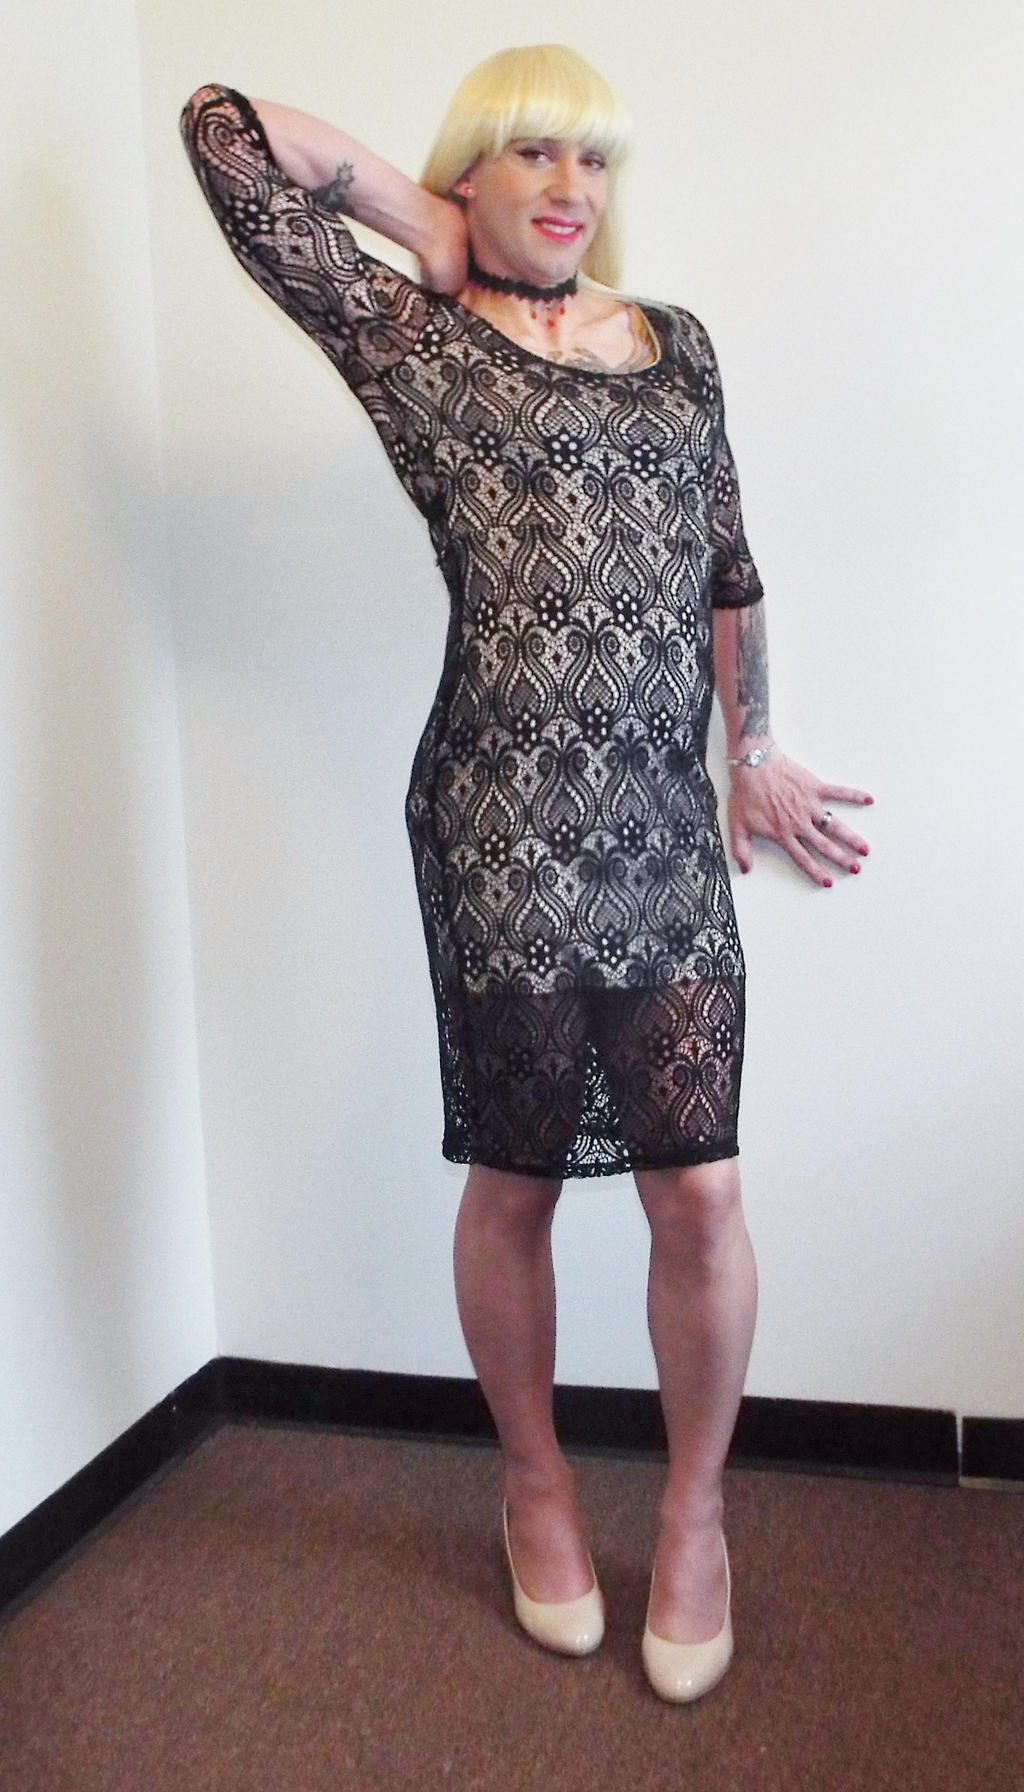 Crossdresser Black Lace Dress By Cowdrake On Deviantart-6051